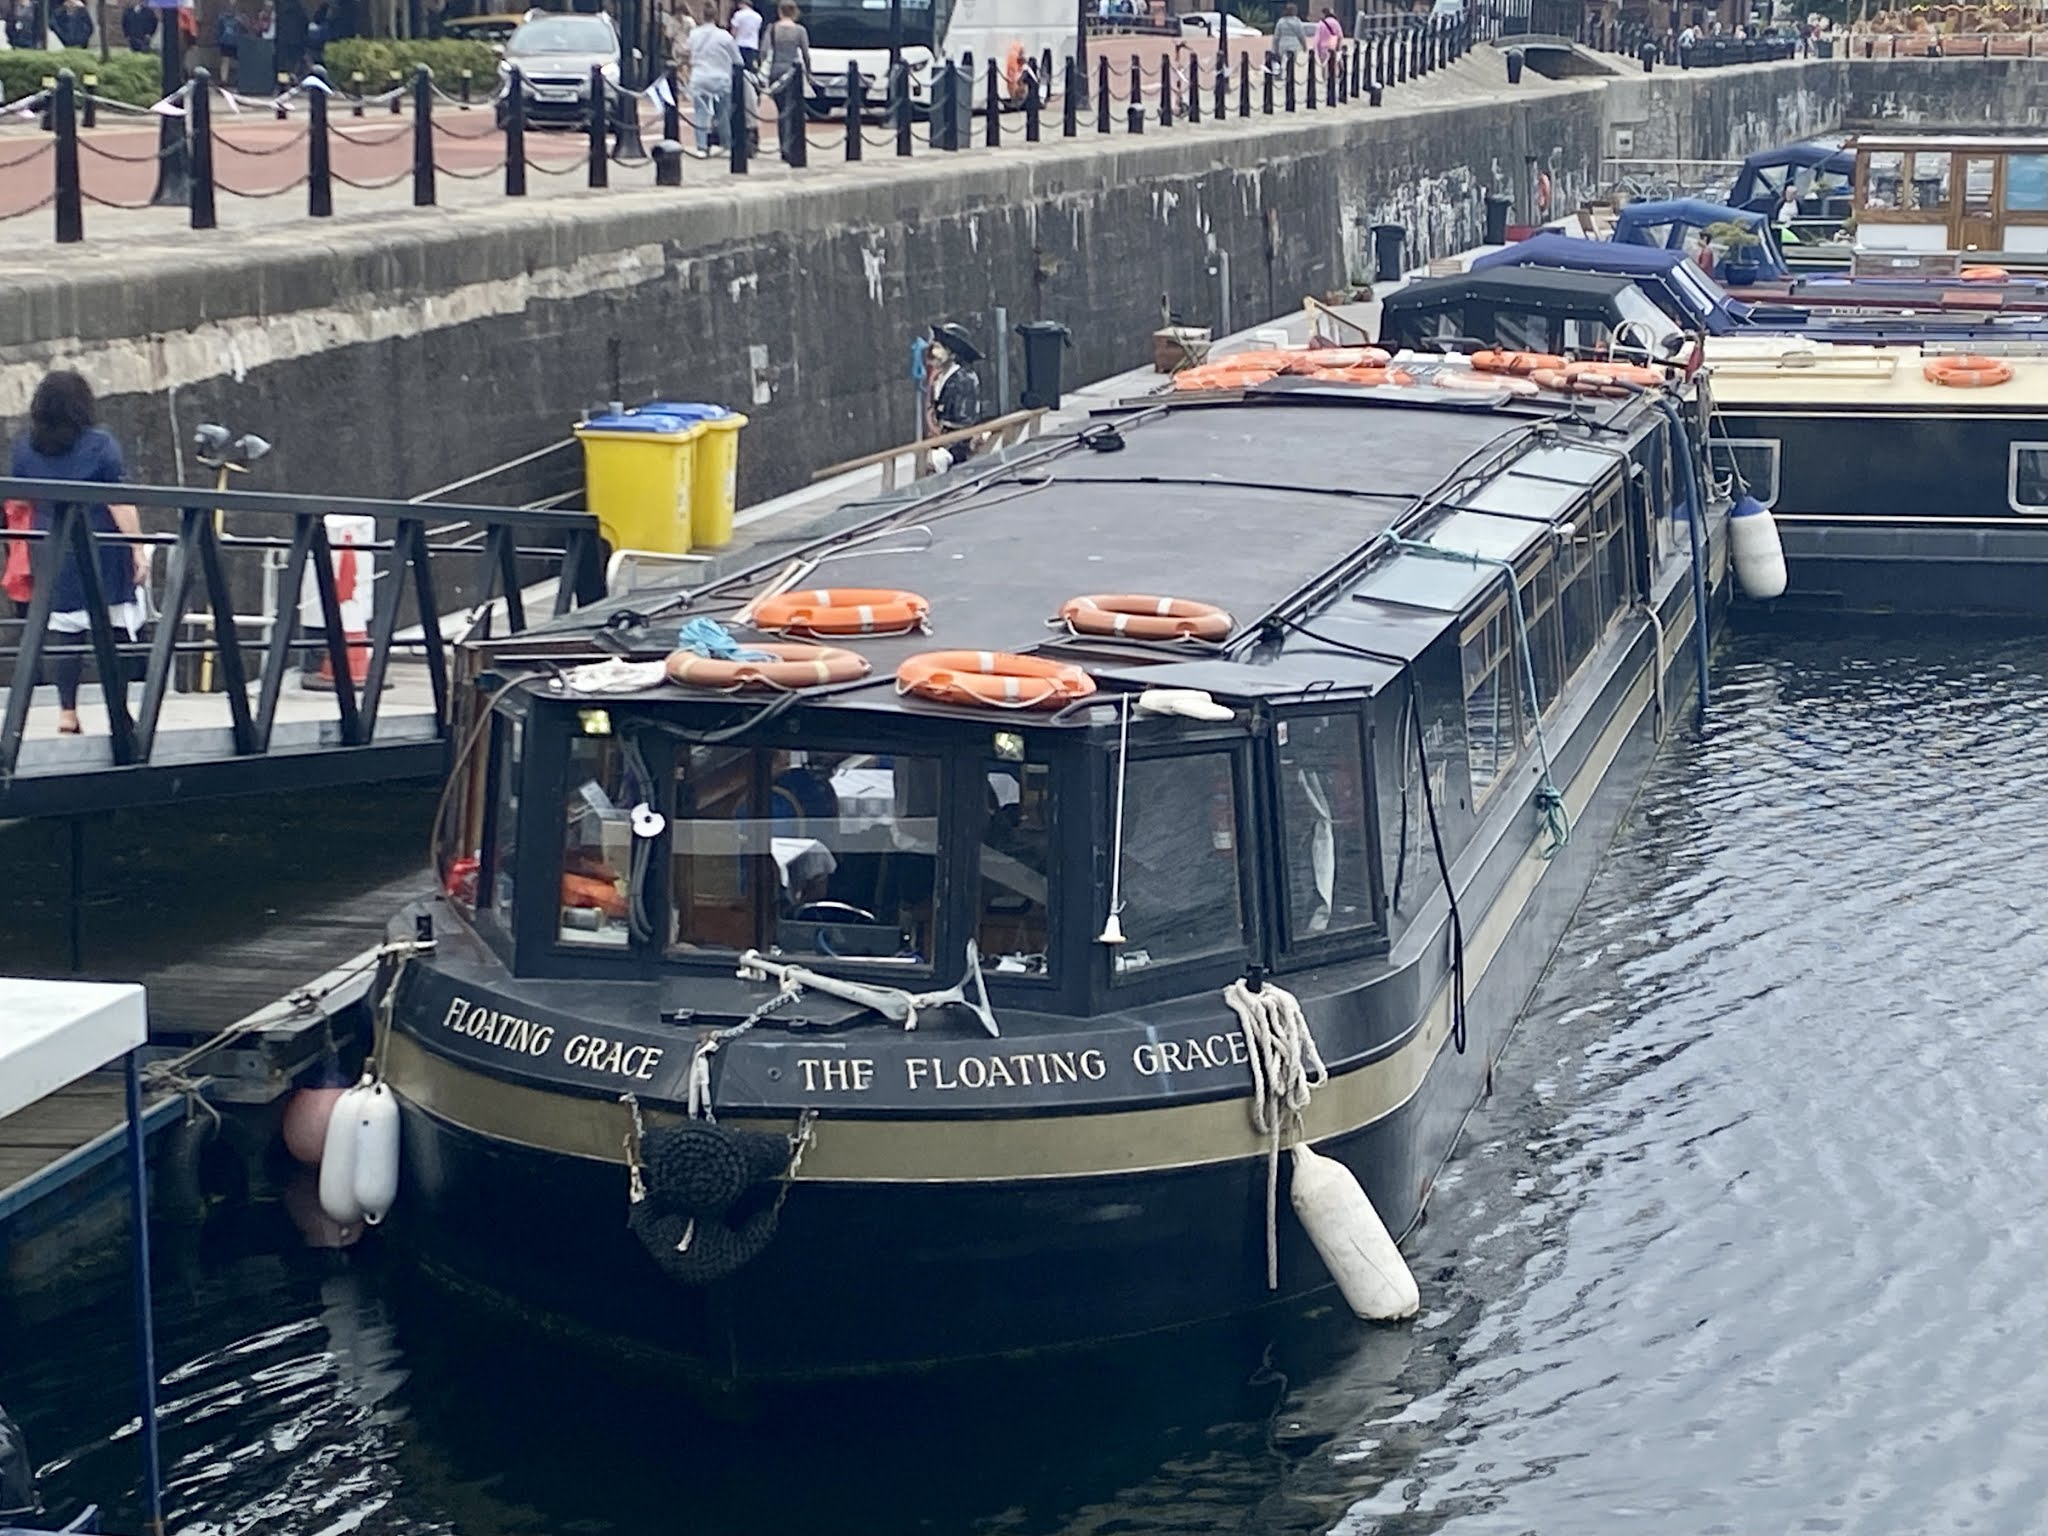 The Floating Grace Boat